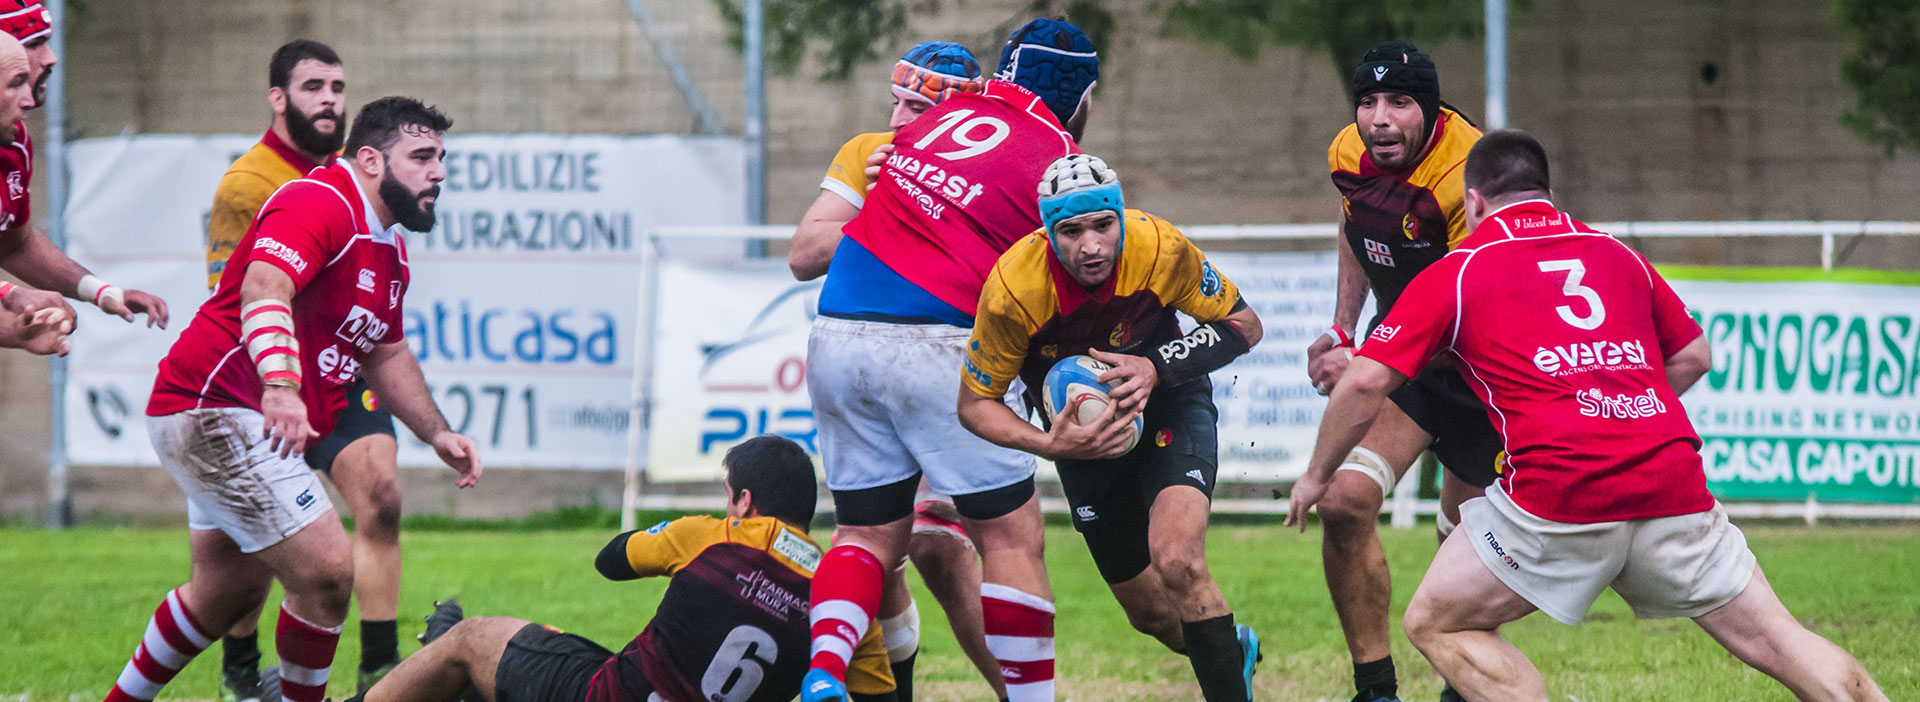 Rugby Capoterra vs Varese